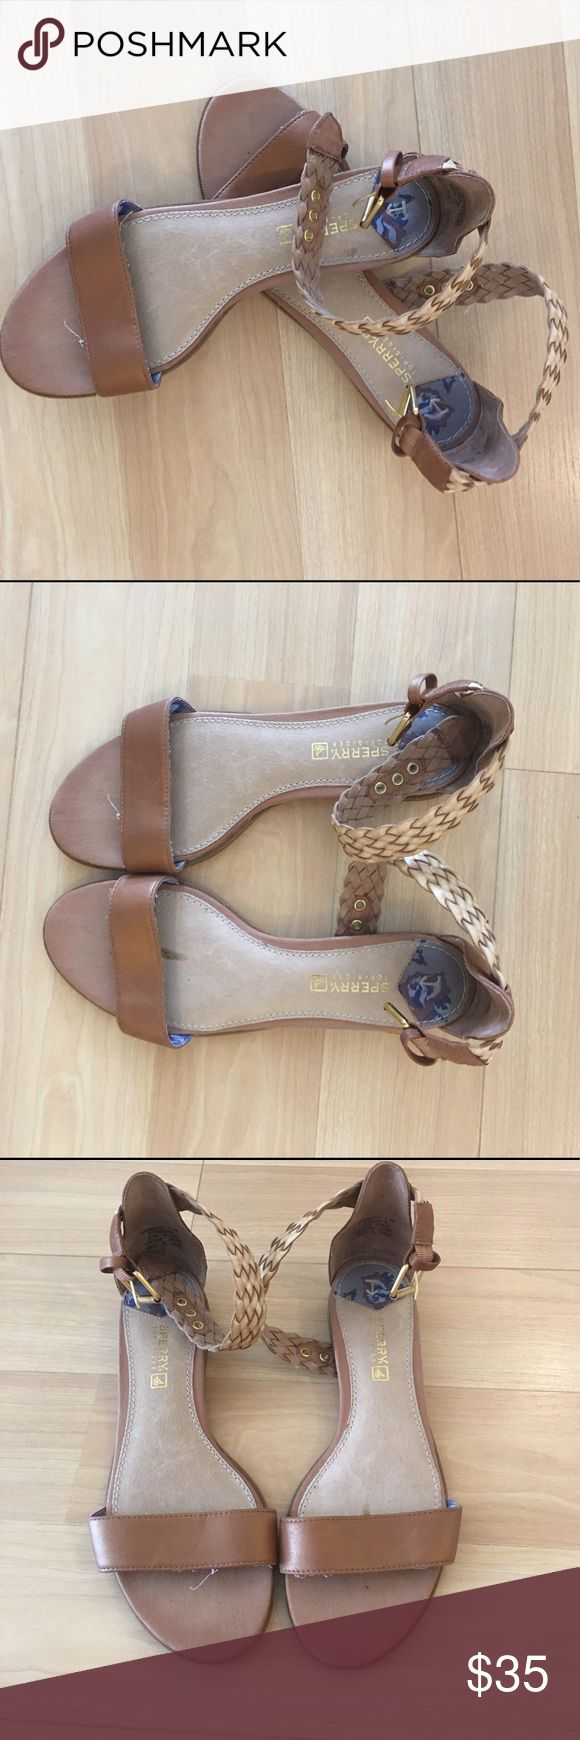 Sperry Women's Flat Sandals Sperry Women's Sandals - Sz 7.5 - Leather Upper Sole with non-skid bottom - great condition - worn once - All sales final. Please ask any questions before purchasing. Sperry Shoes Sandals